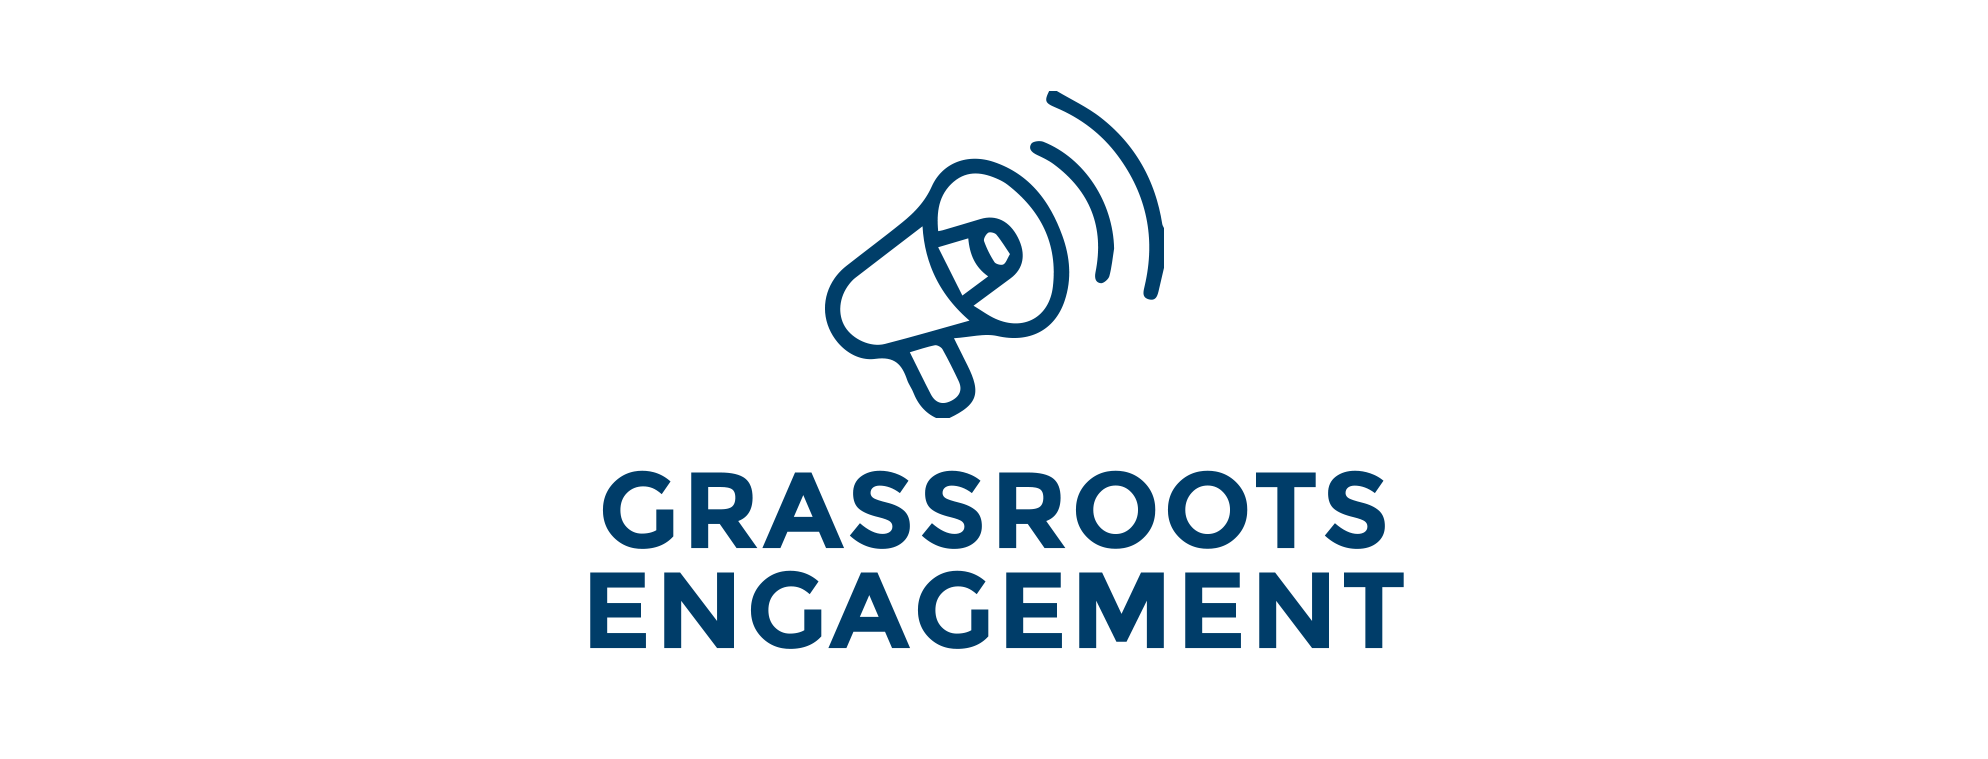 grassroots-engagement.png